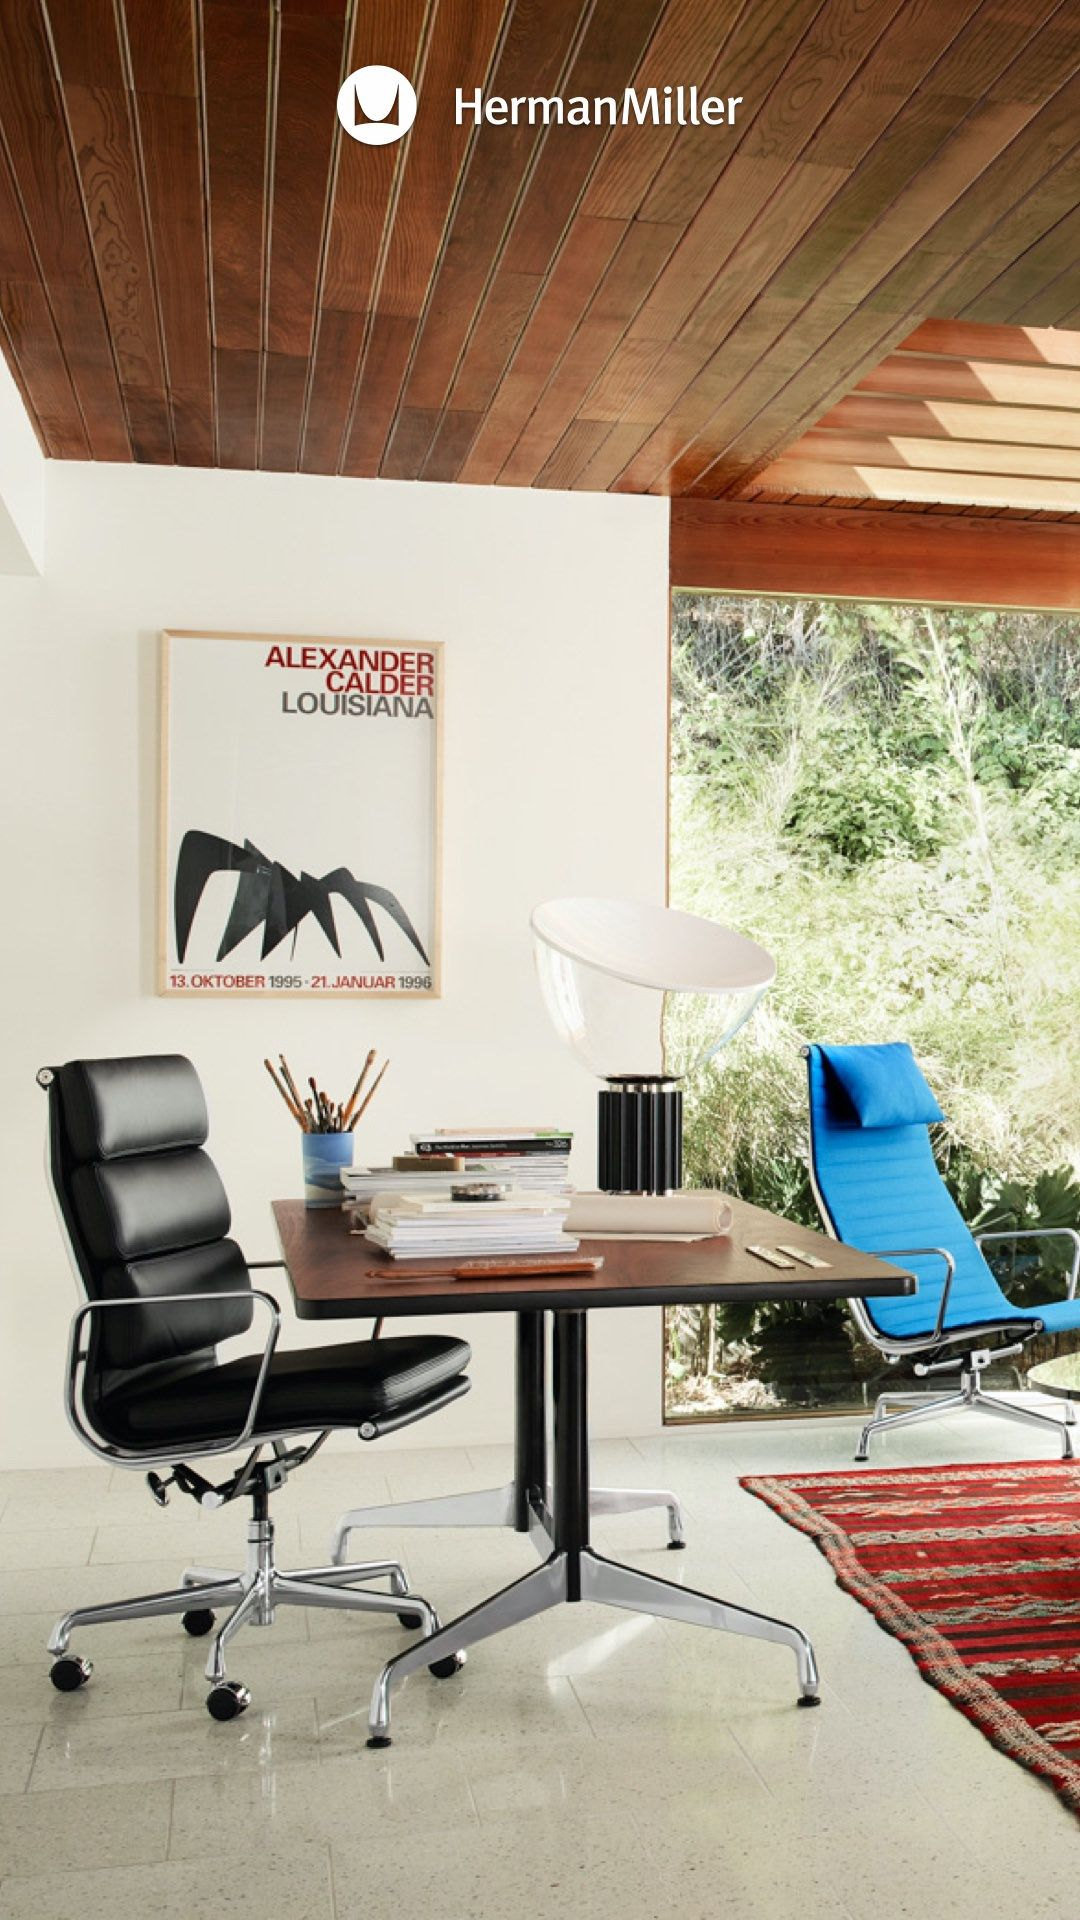 Eames Soft Pad Executive Chair In 2020 Home Office Chairs Executive Chair Home Office Furniture